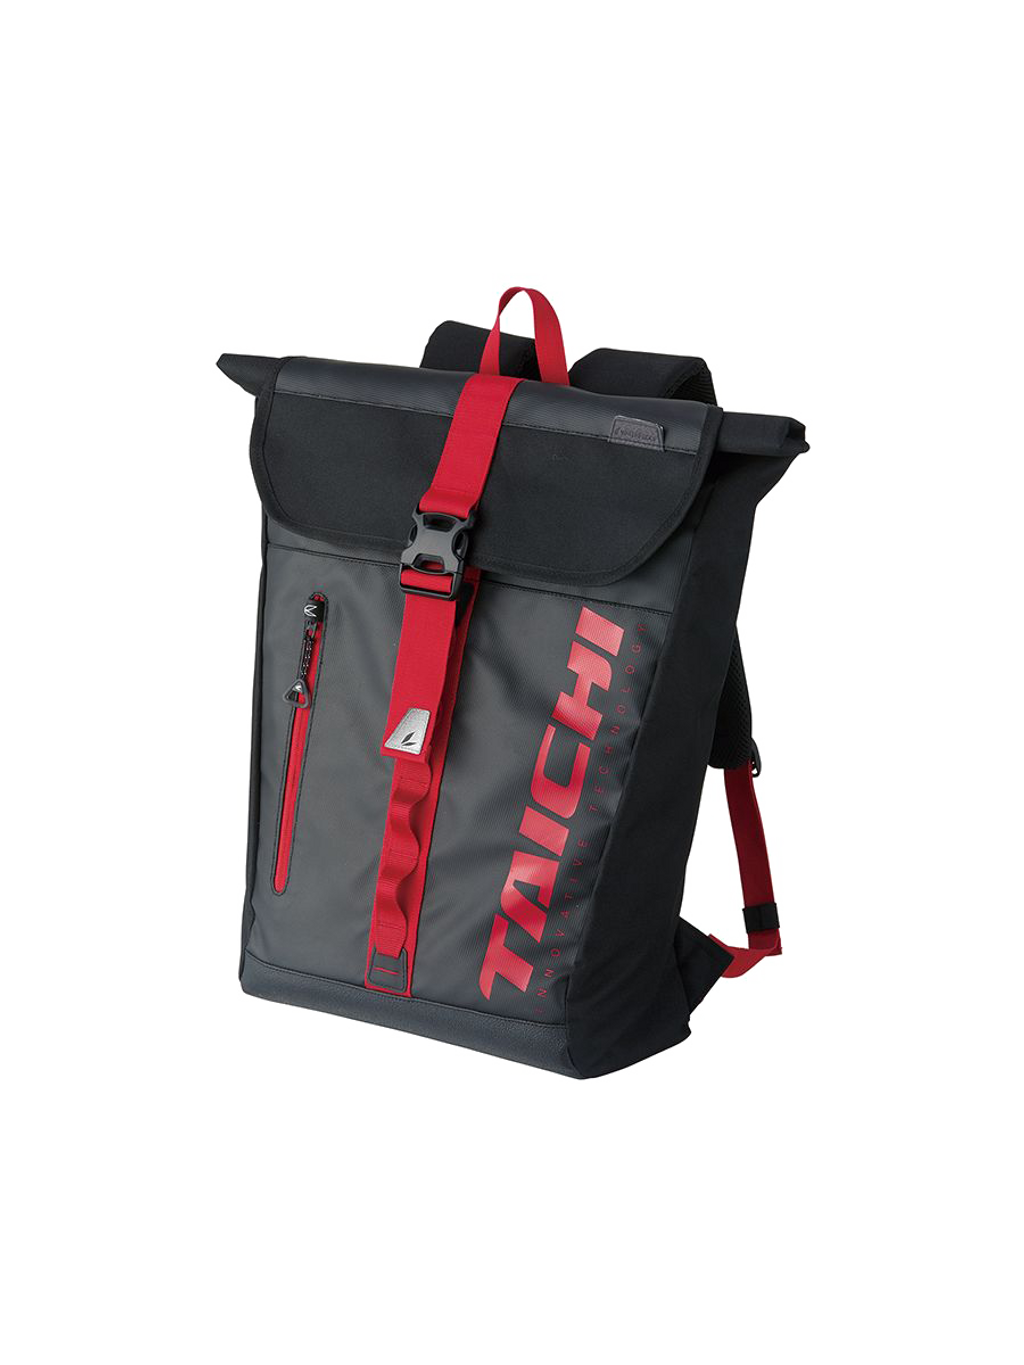 40 RS TAICHI RSB278 WP BACK PACK BLACK RED.png